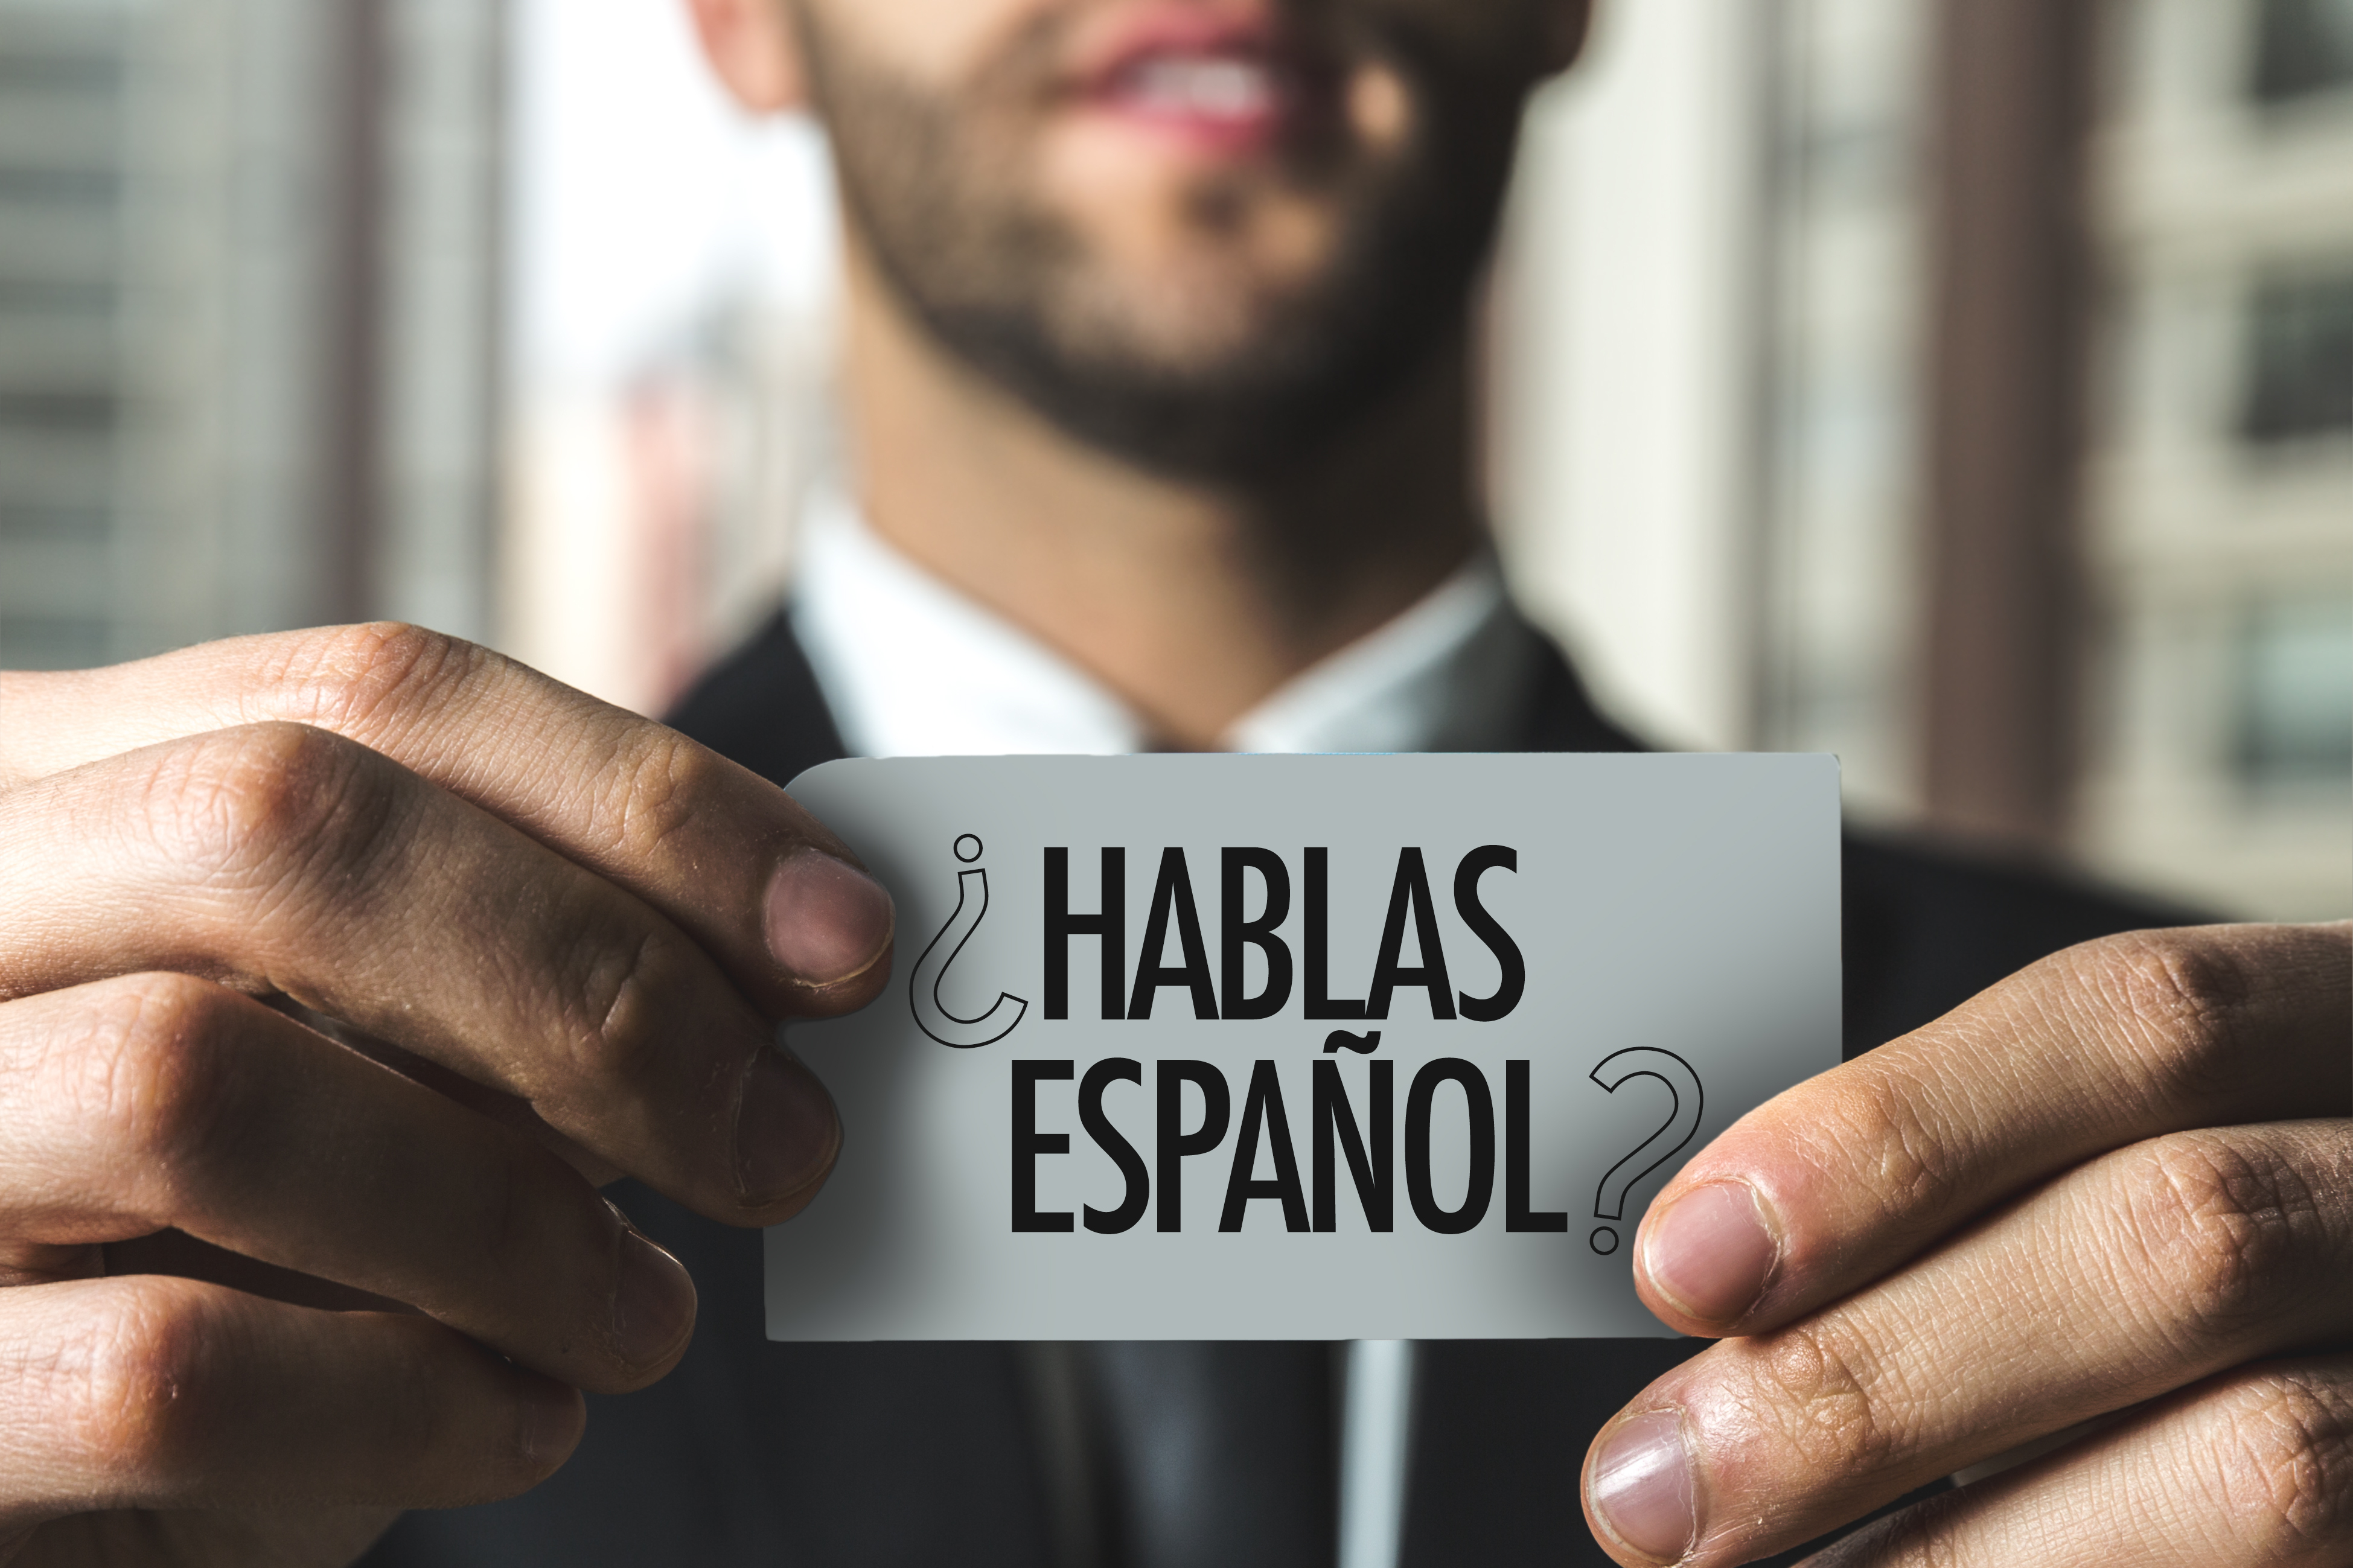 Se Habla Espanol!  We speak Spanish.